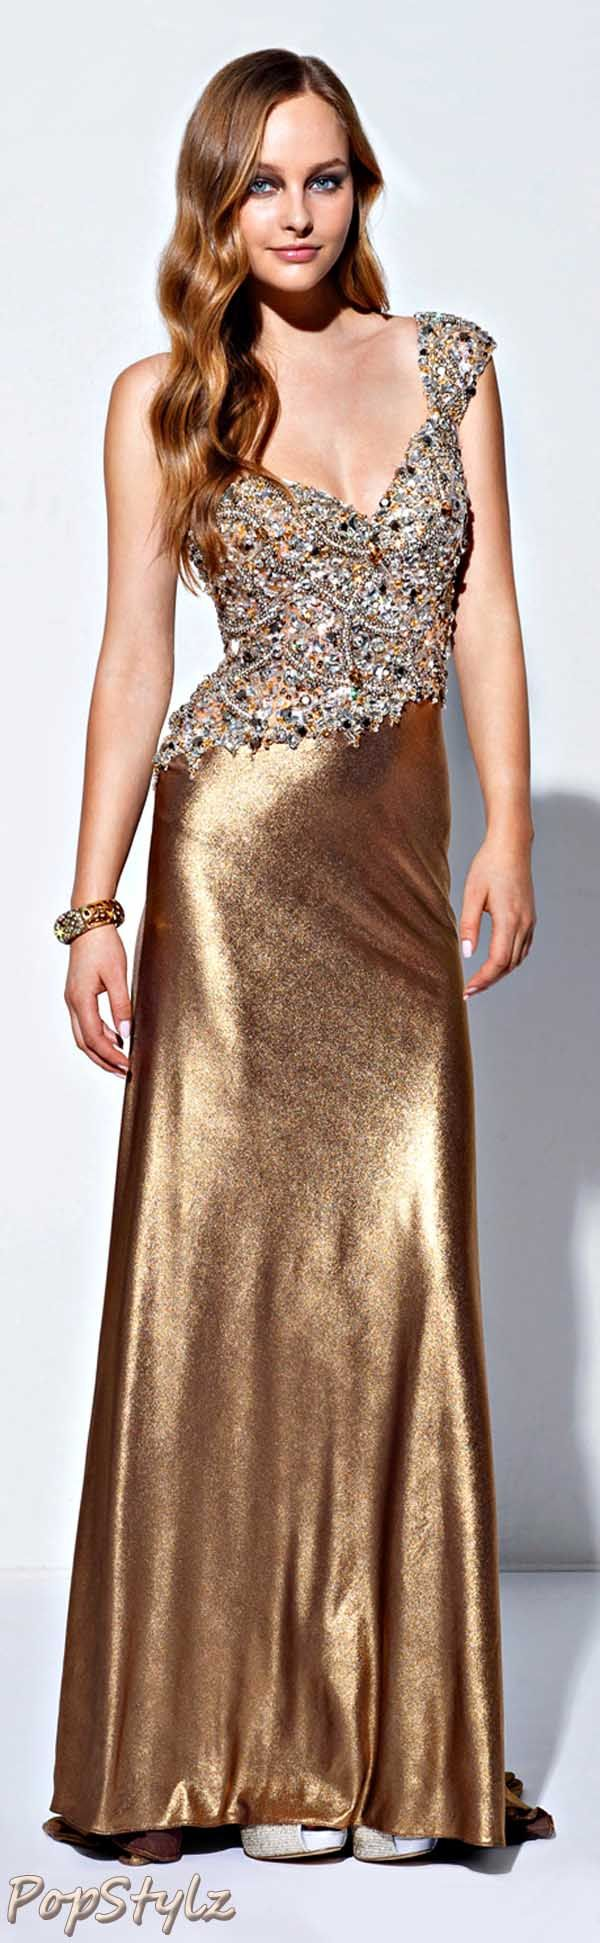 Terani Couture Silky Gold Gown | golden garments III | Pinterest ...